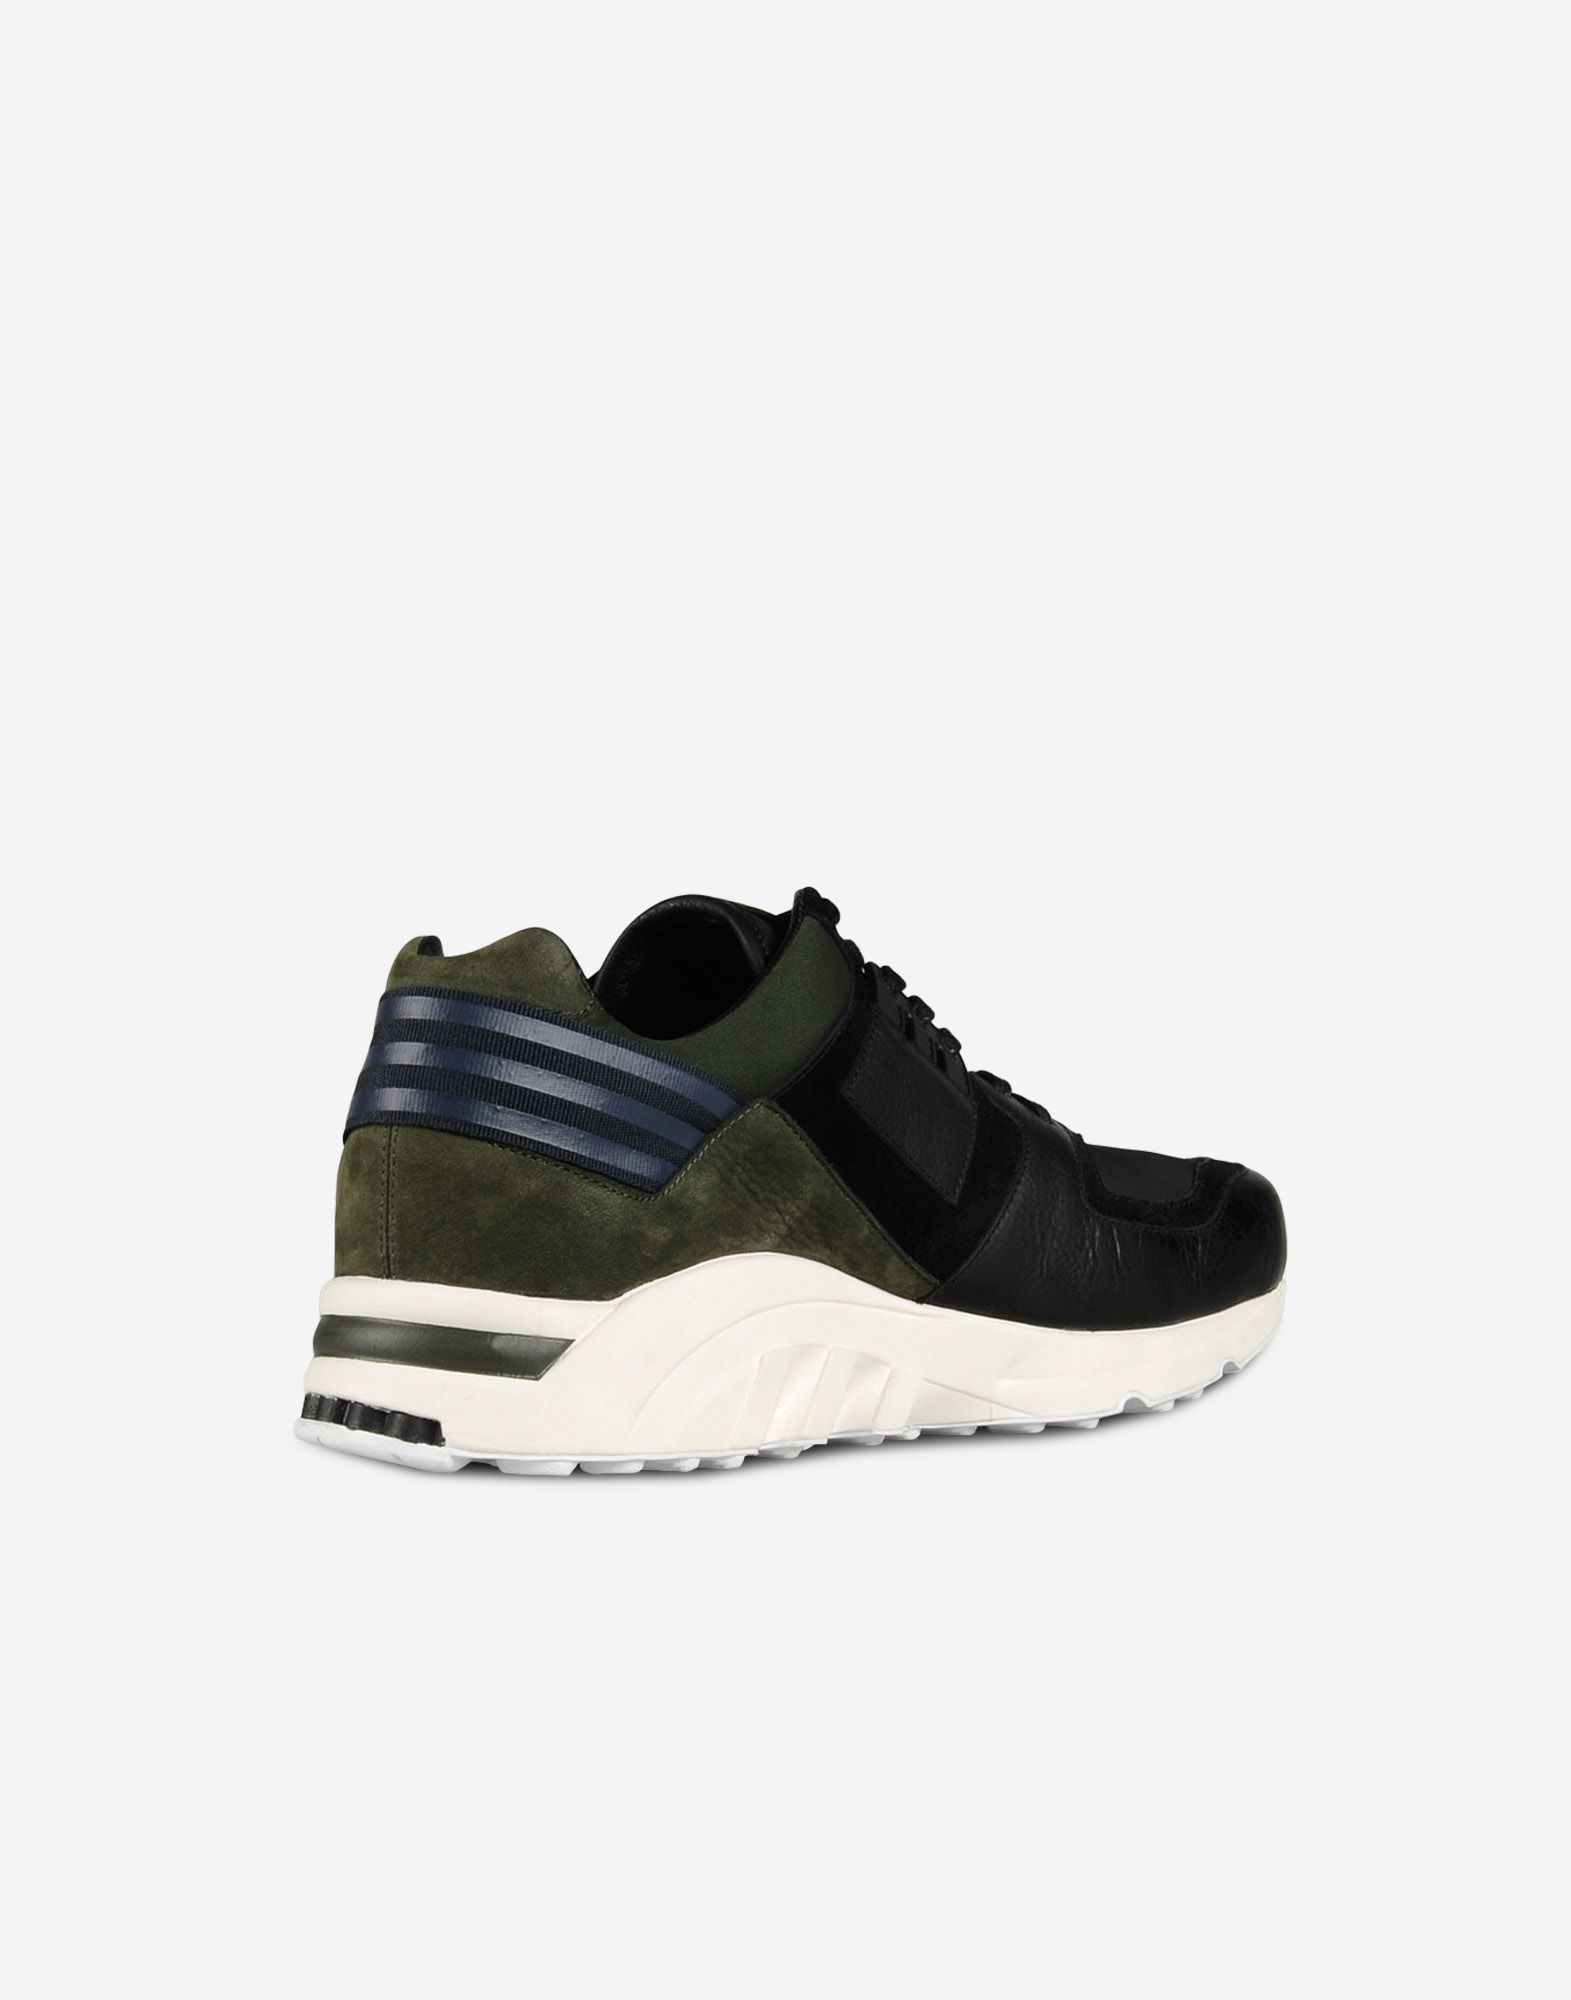 Cheap Adidas EQT SUPPORT 93/17 BLACK/WHITE Undefeated